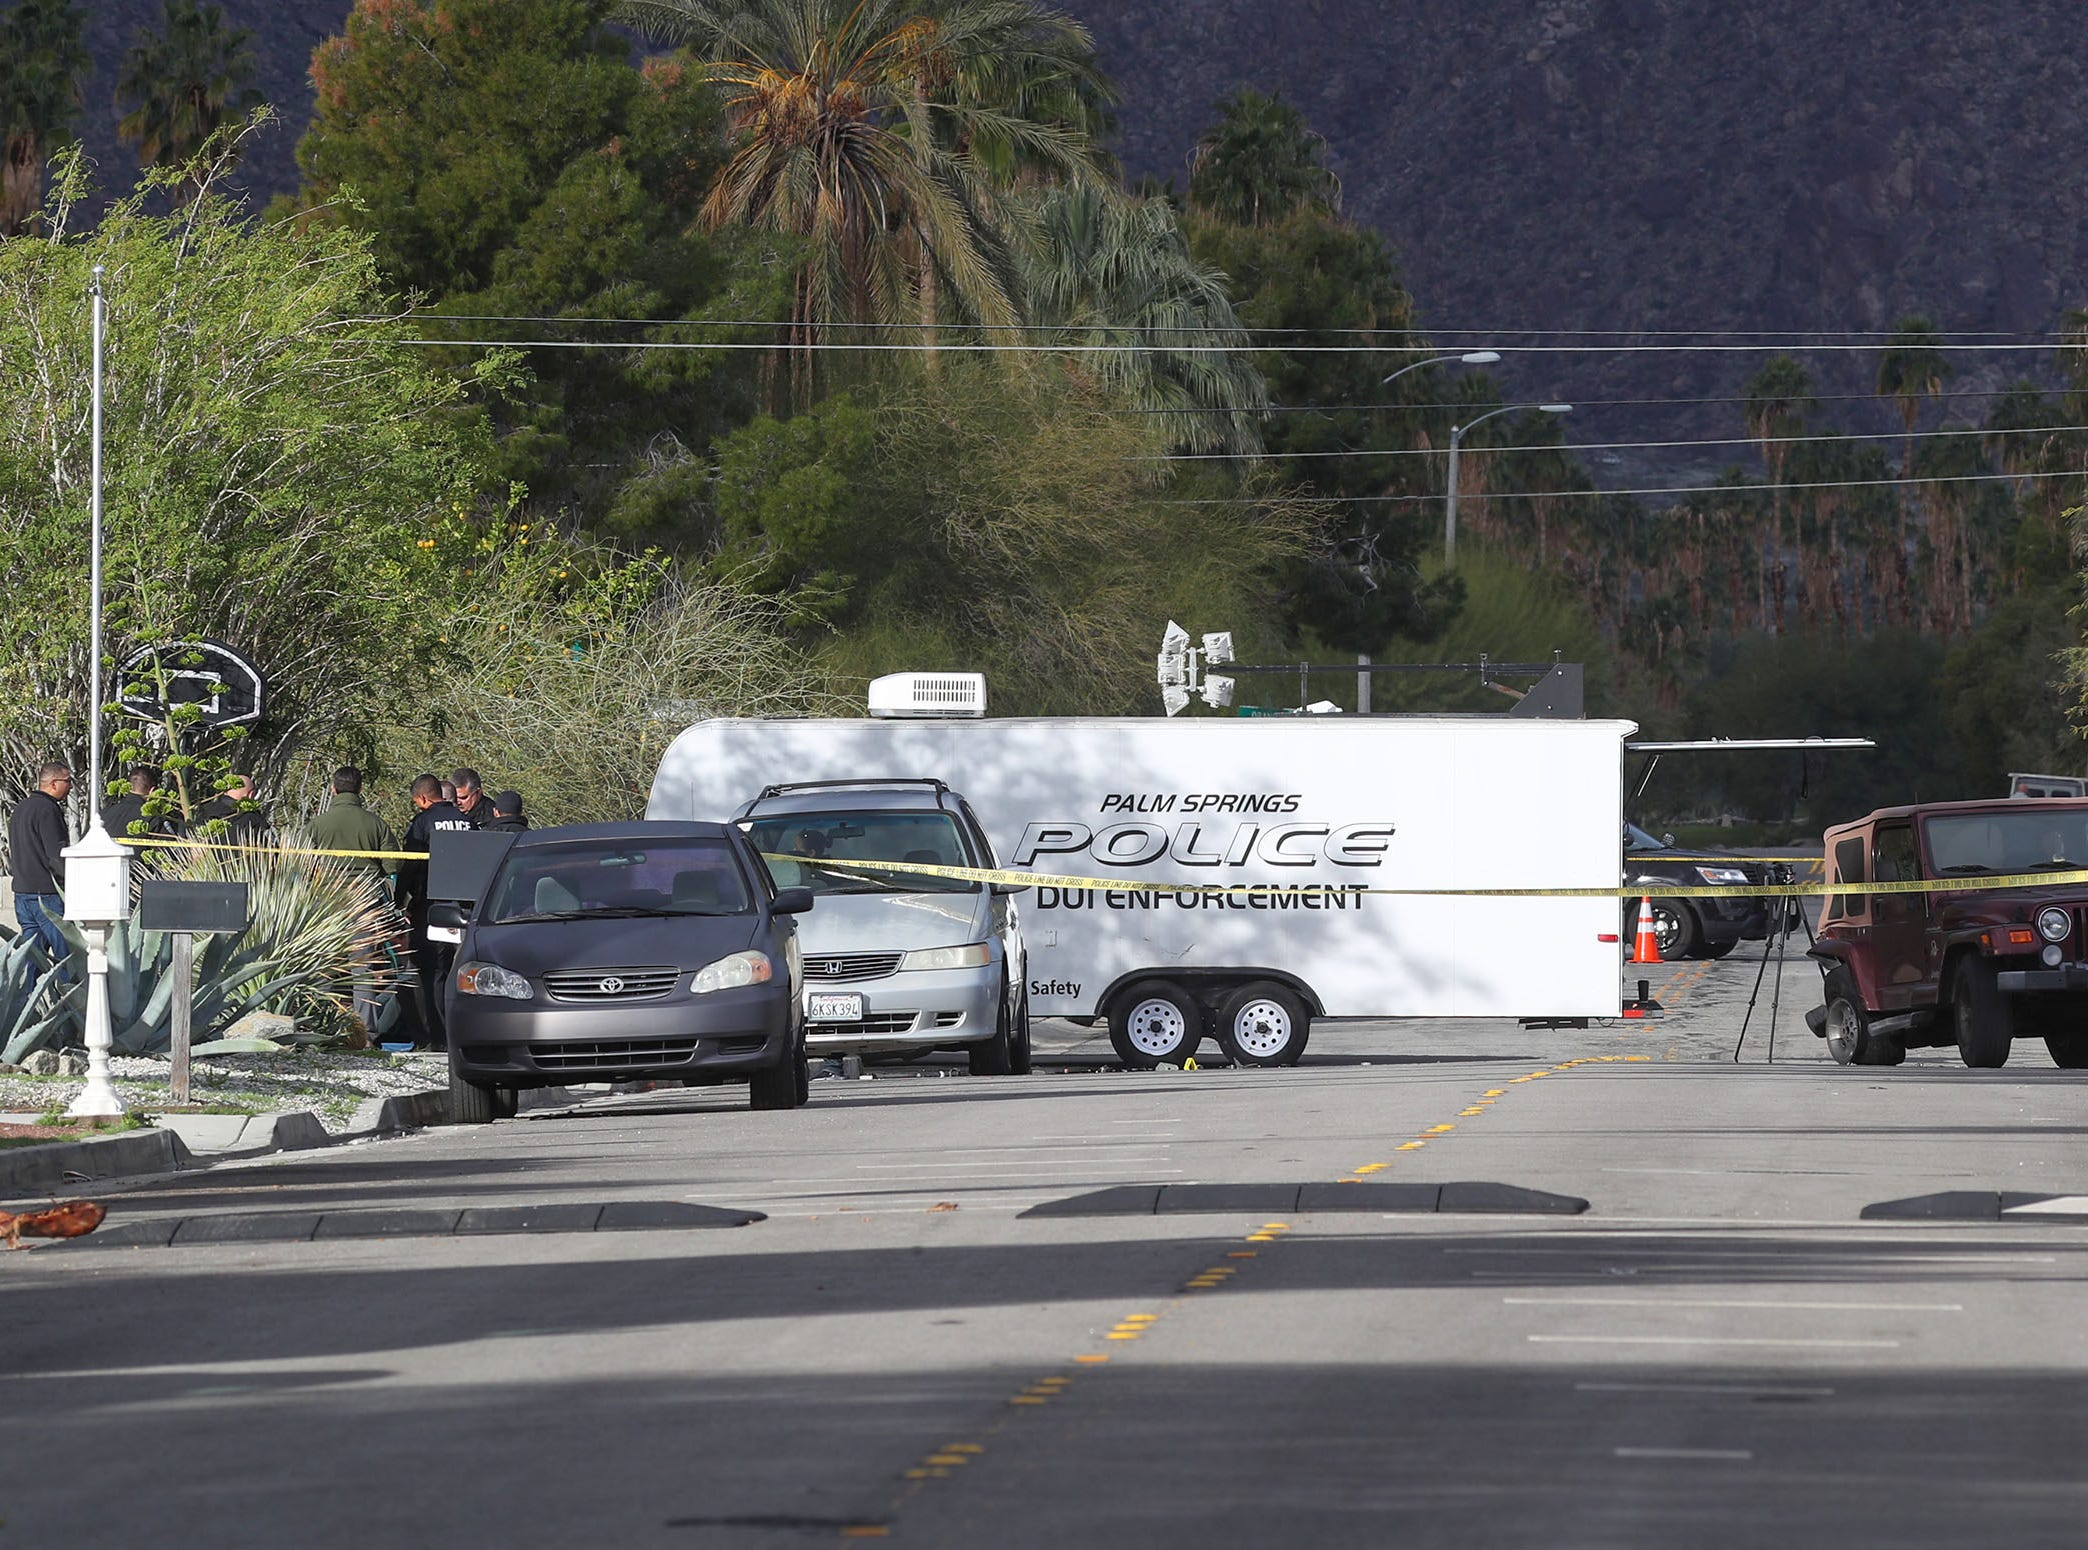 Sunny Dunes Road in Palm Springs, where a traffic collision was being investigated on February 4, 2019. The accident was in between El Placer Road and Avenida Evelita on Sunny Dunes Road.